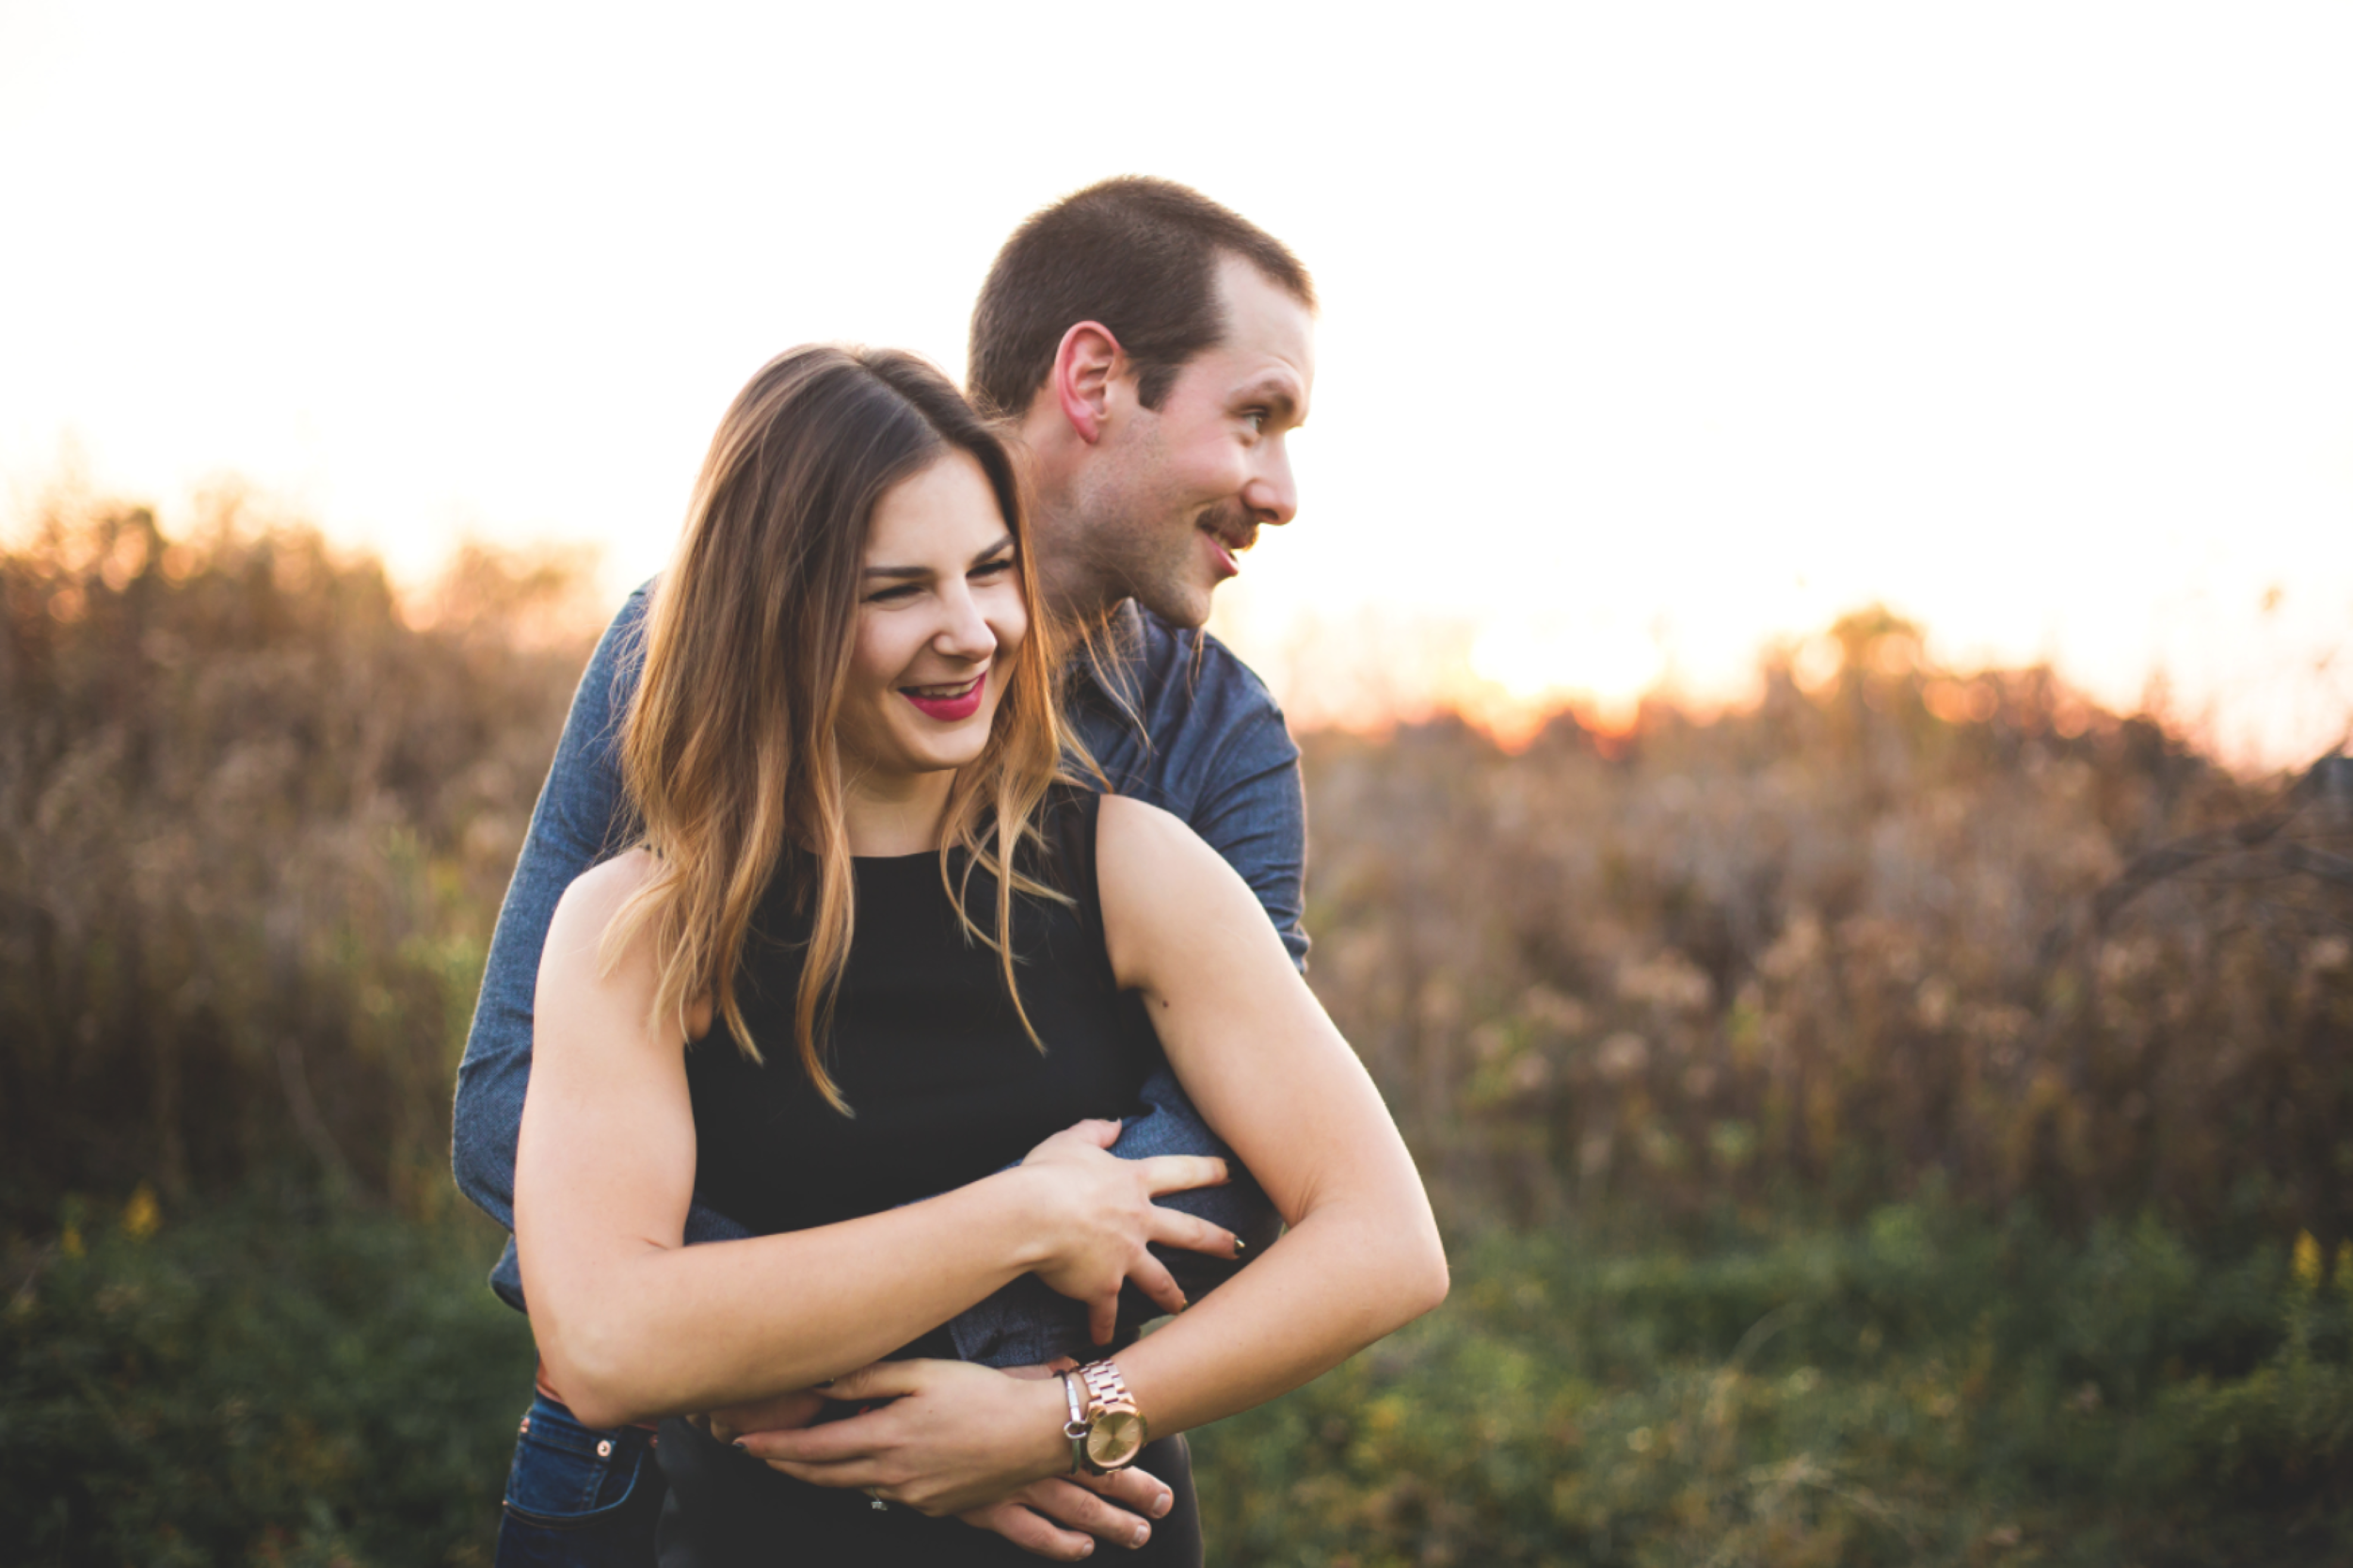 Engagement-Session-Brantford-Hamilton-Burlington-Oakville-Niagara-Toronto-Wedding-Photographer-Engaged-Photography-Golden-Hour-Moments-by-Lauren-Photo-Image-7.png